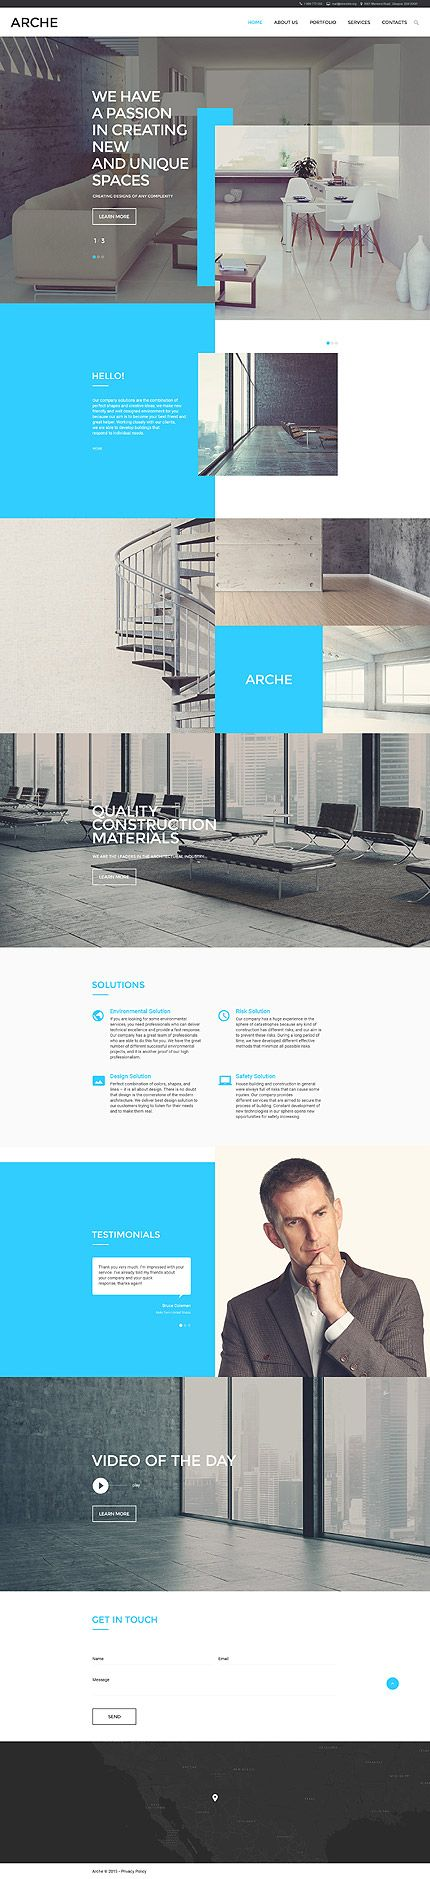 Best 25 Architecture Websites Ideas Only On Pinterest